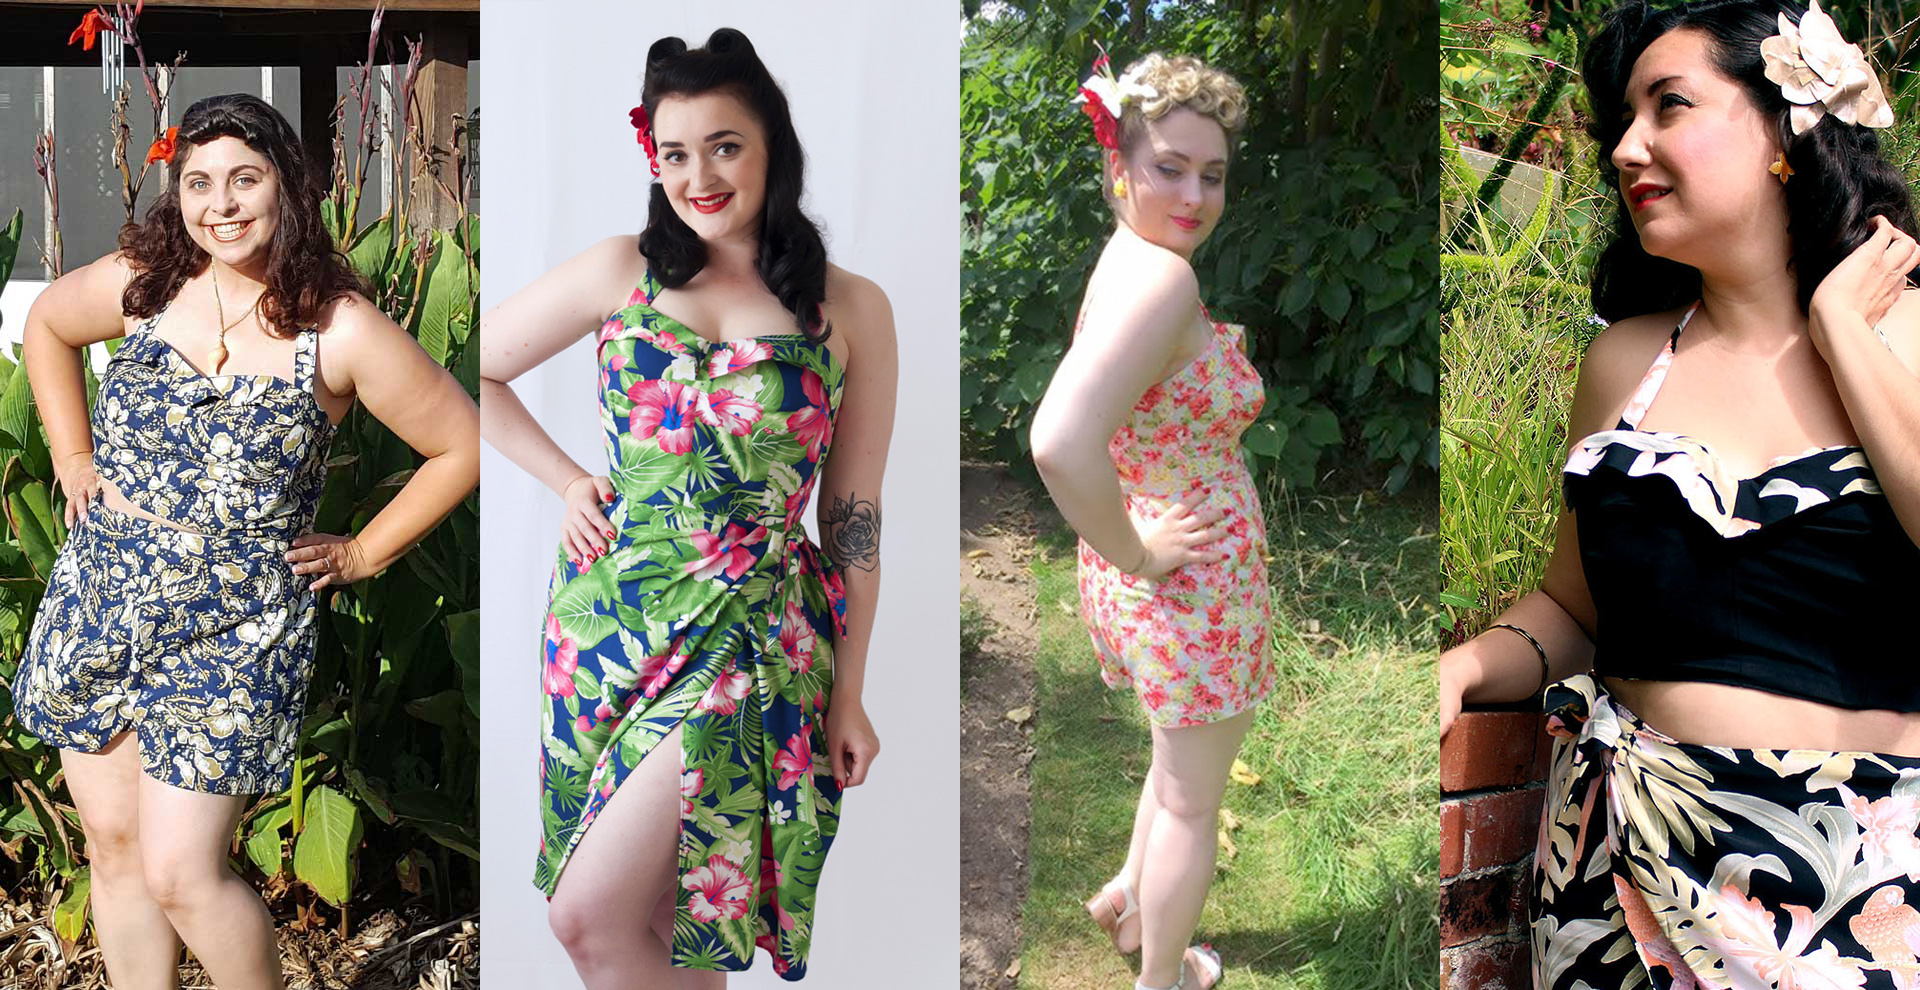 Akram from Akram's Ideas, Abi from The Crafty Pinup, Christina from Gussets and Godets, and Bianca from Vintage on Tap in Butterick B6354